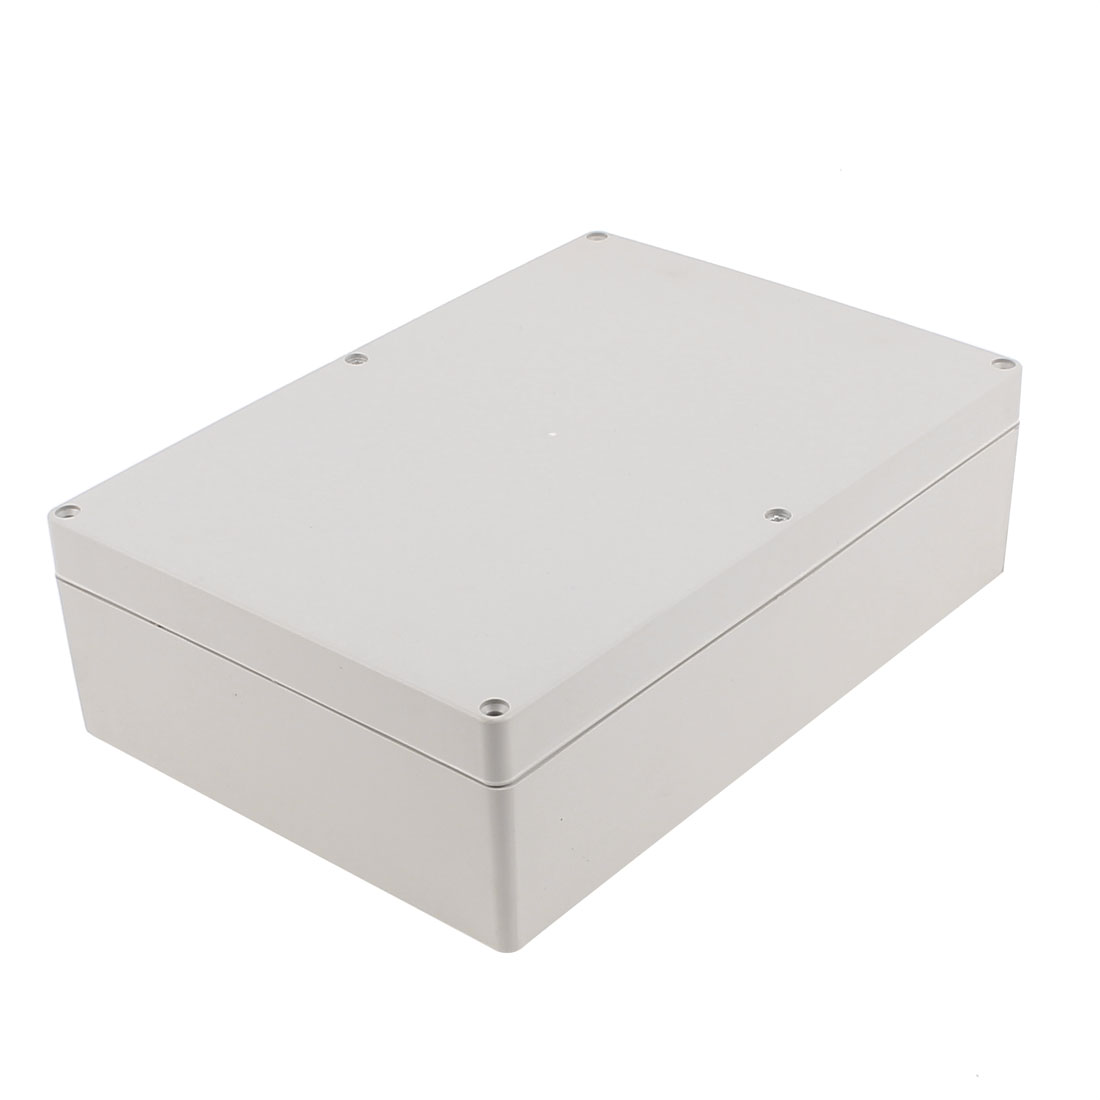 263 x 185 x 80mm Dustproof IP65 Junction Box Terminal Connection Box Enclosure